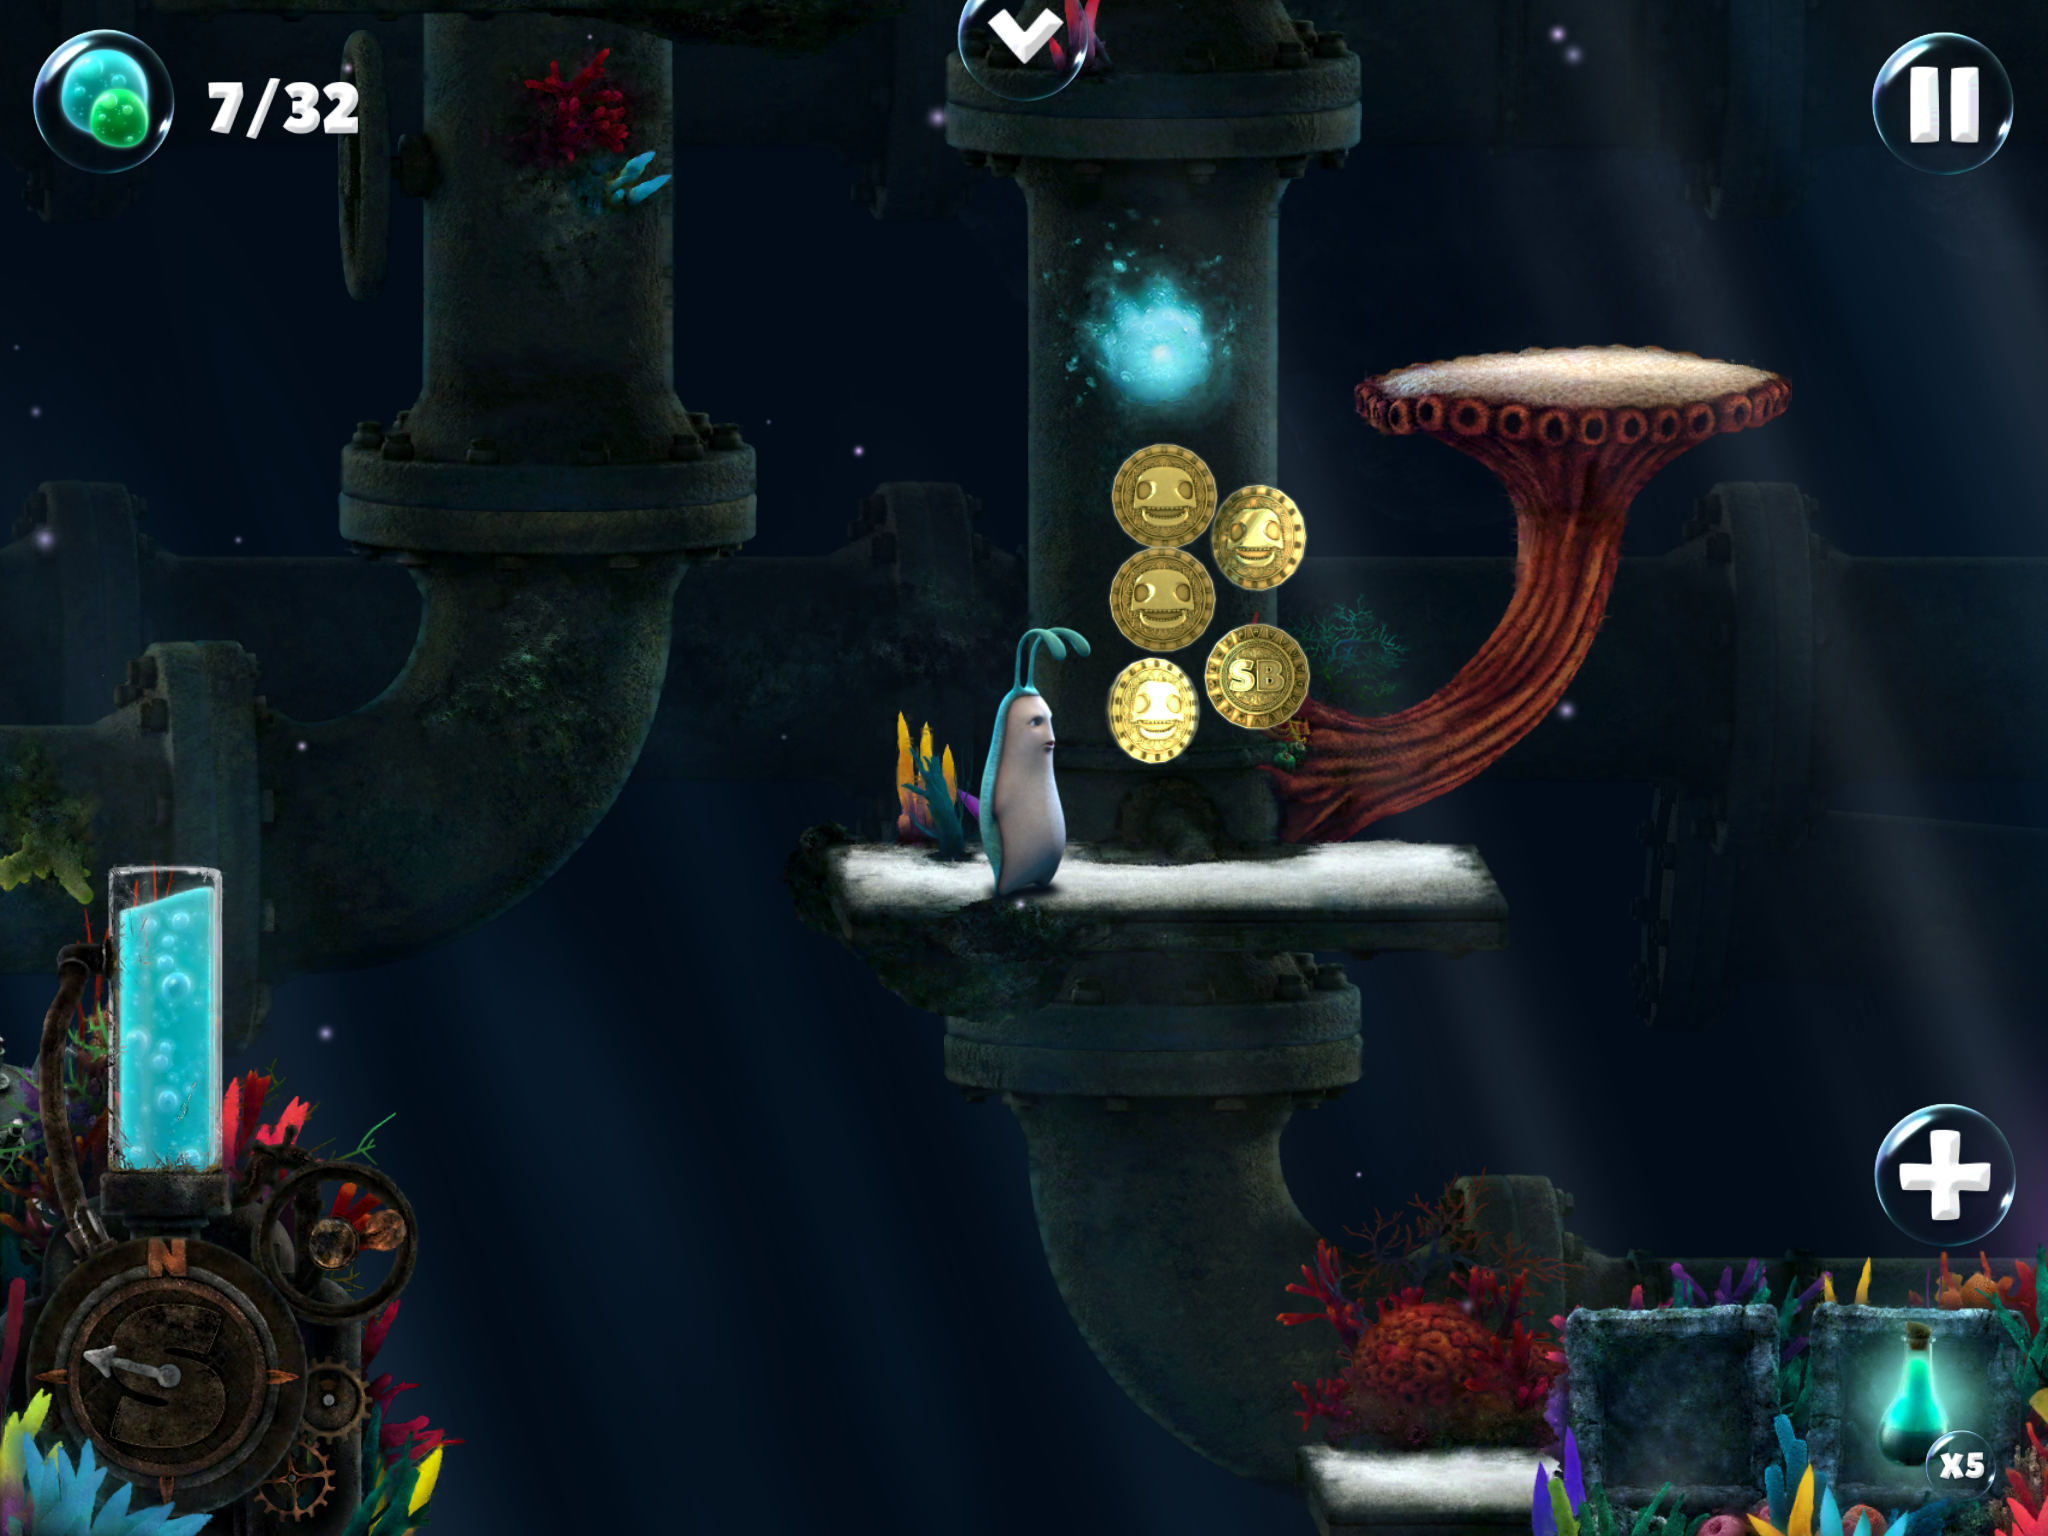 Snailboy: Rise of Hermitron review - A twangy platformer with a lot of polish